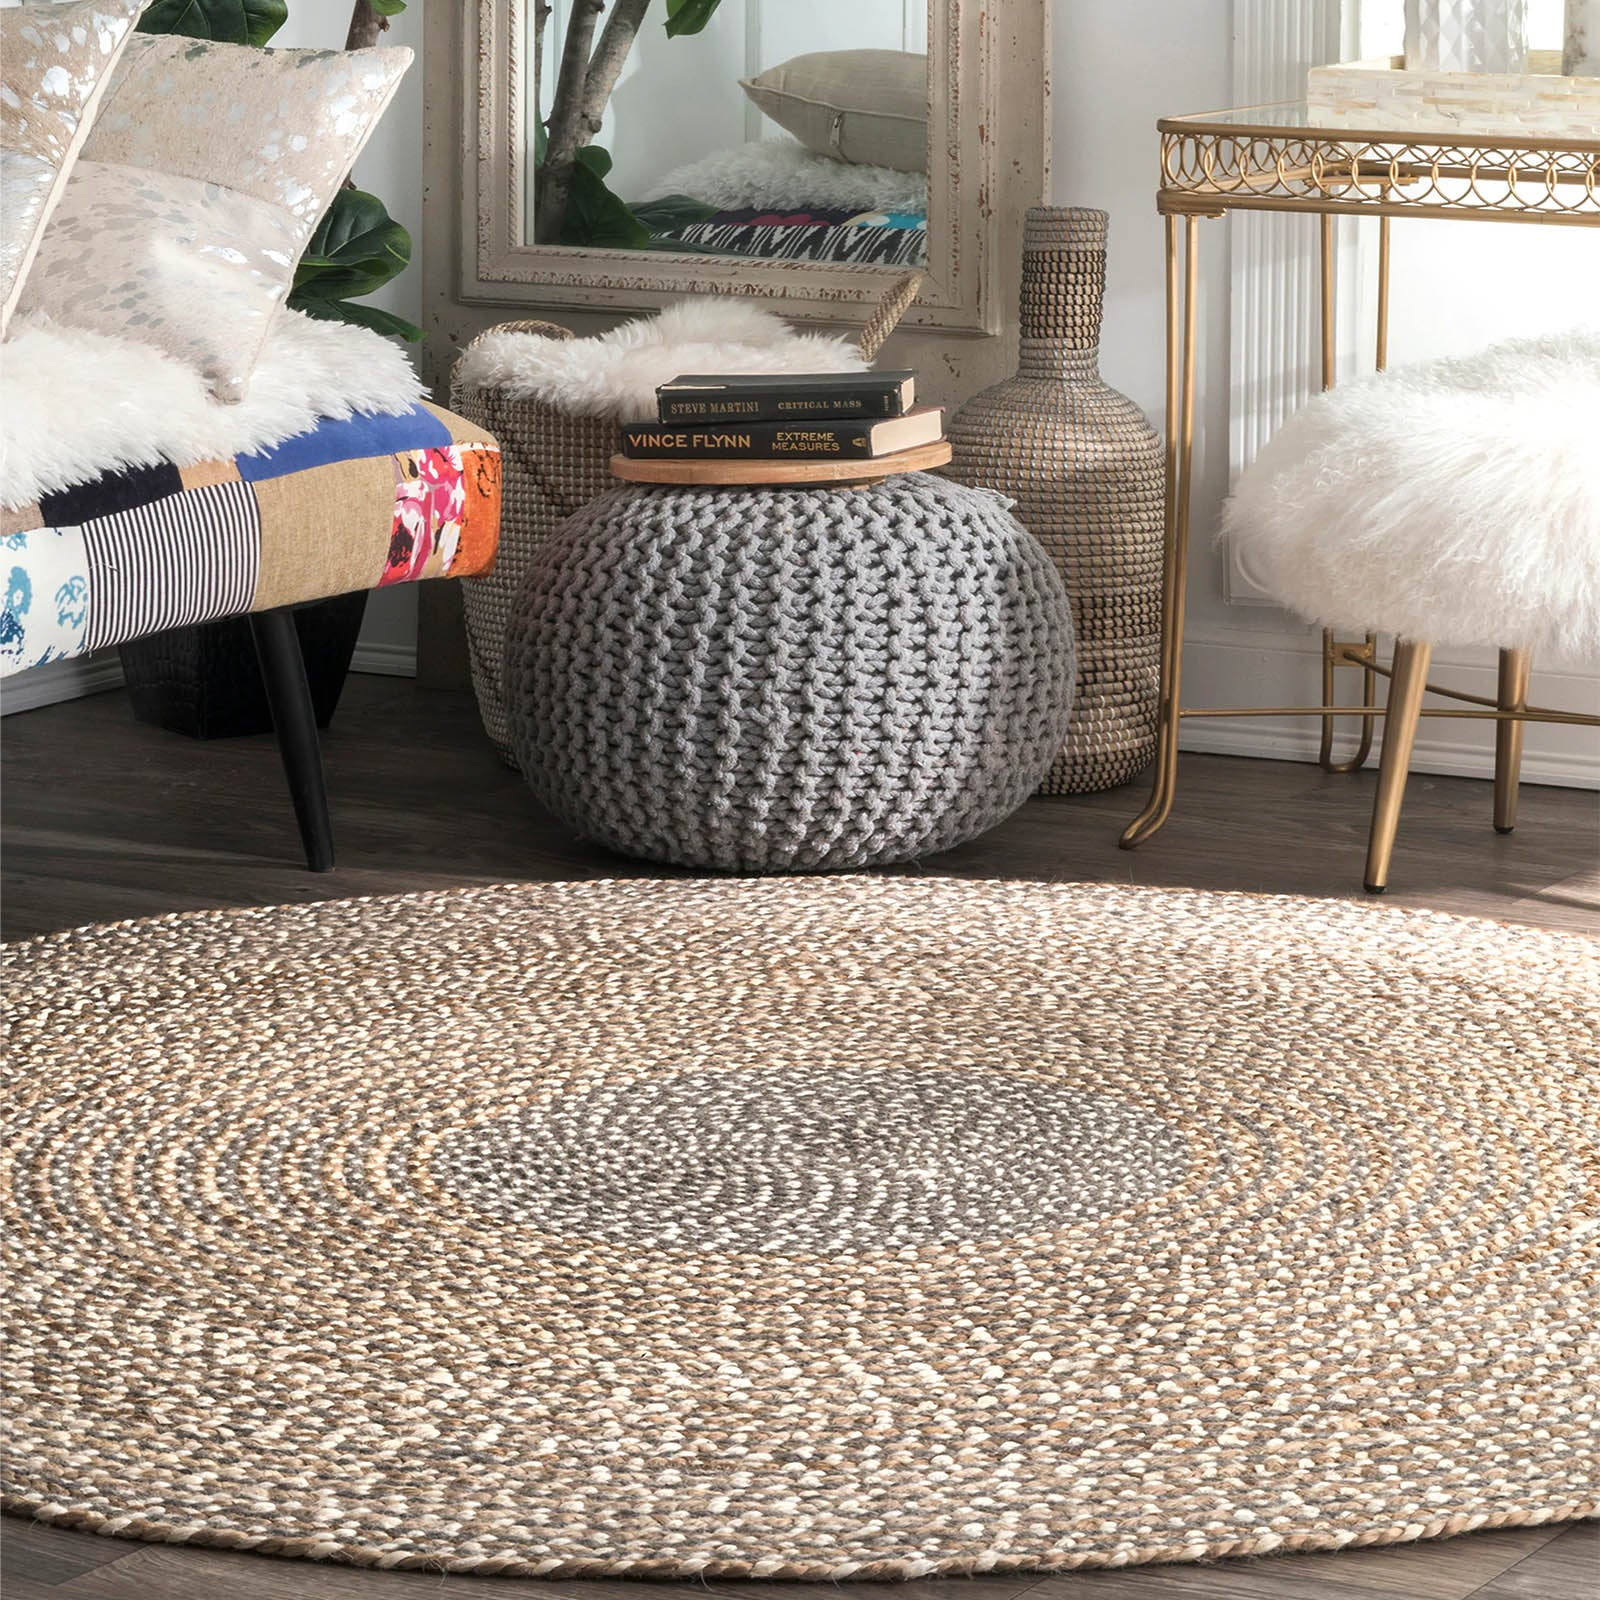 250 CM Braided Round handmade Wool Rug JH-2351-XL